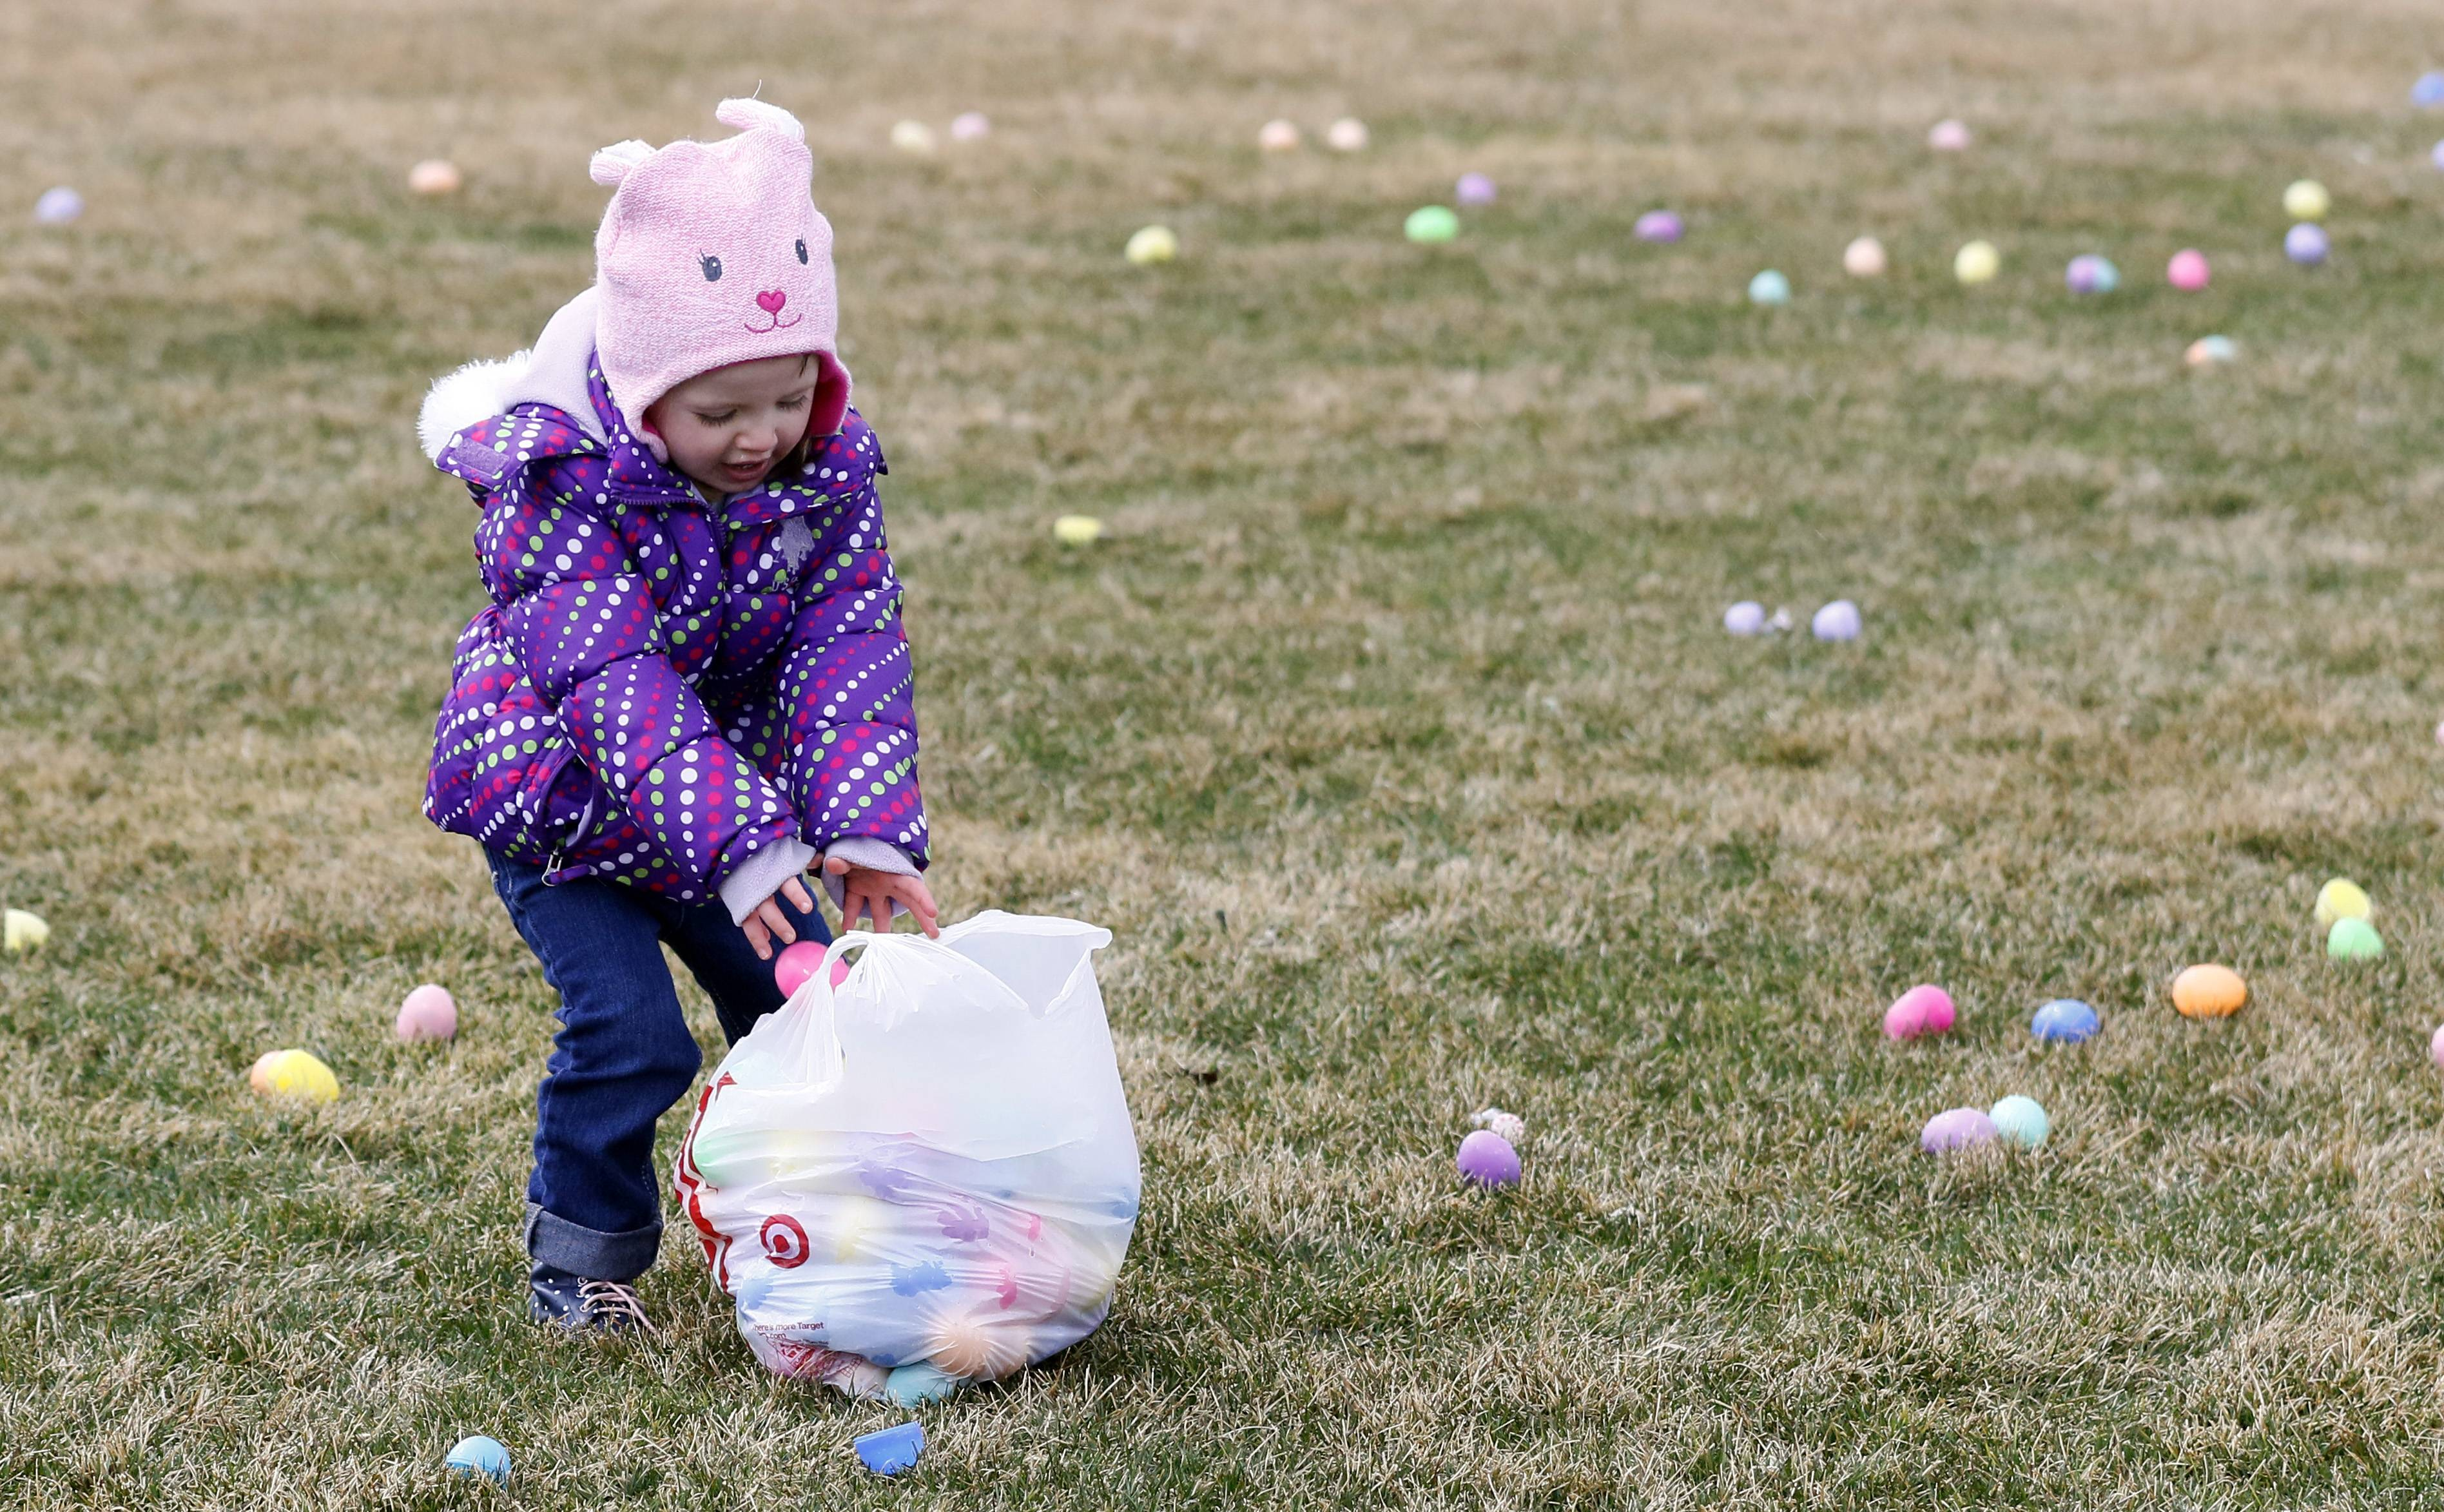 Isabelle VanMilligen, 2, of Bolingbrook fills her bag full of eggs during the Naperville Jaycees annual egg hunt at the Frontier Park Sports Complex.